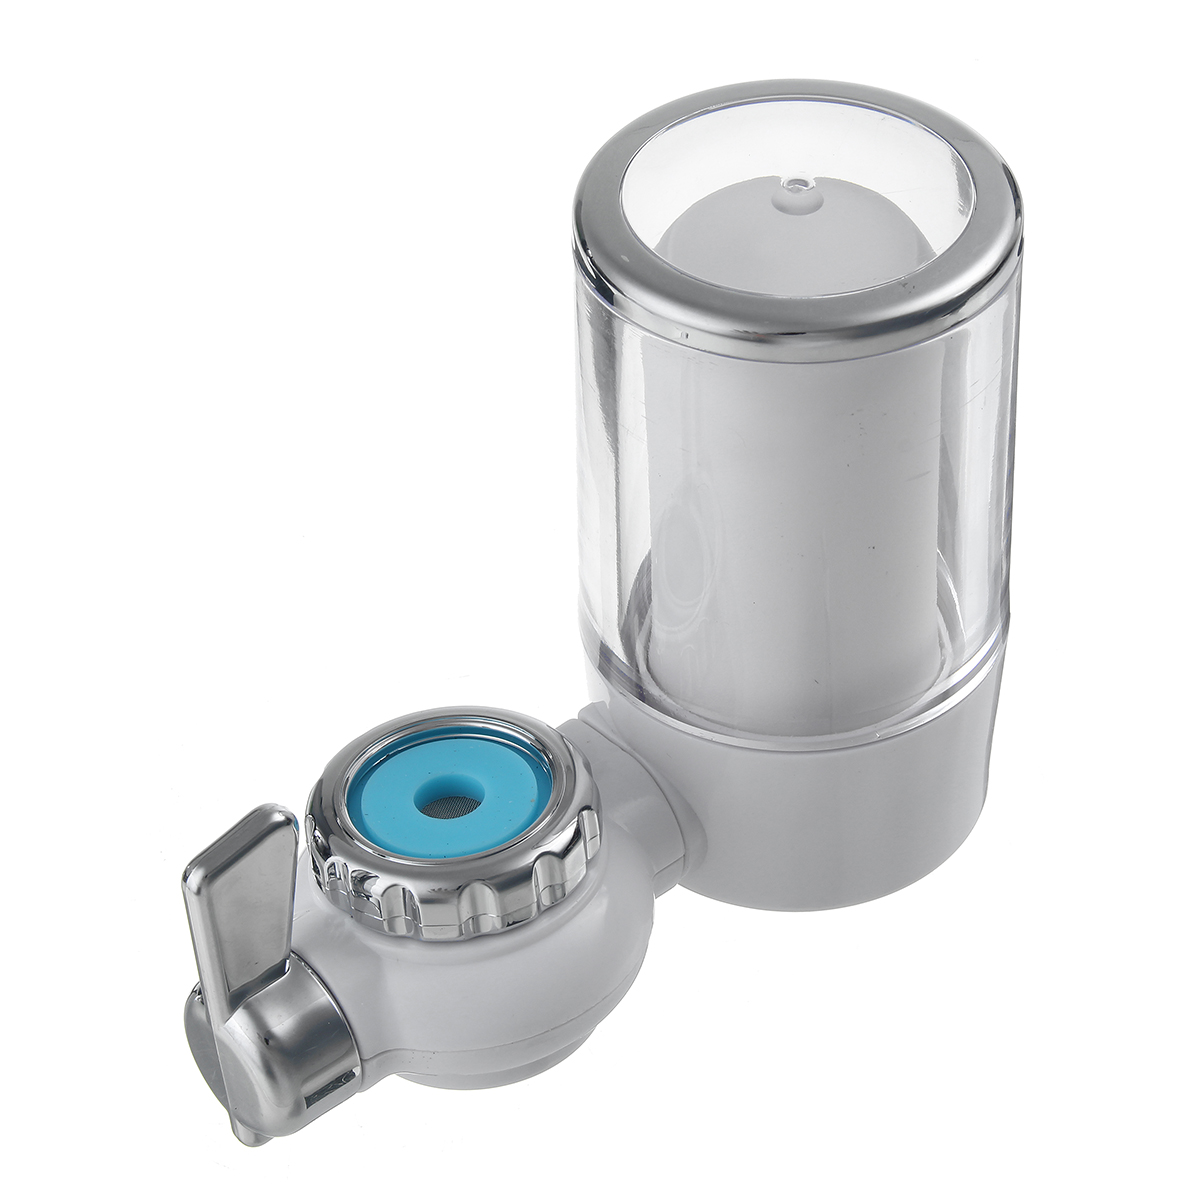 Faucet Water Filter Kitchen Sink Mount Filtration Tap Purifier Cleaner